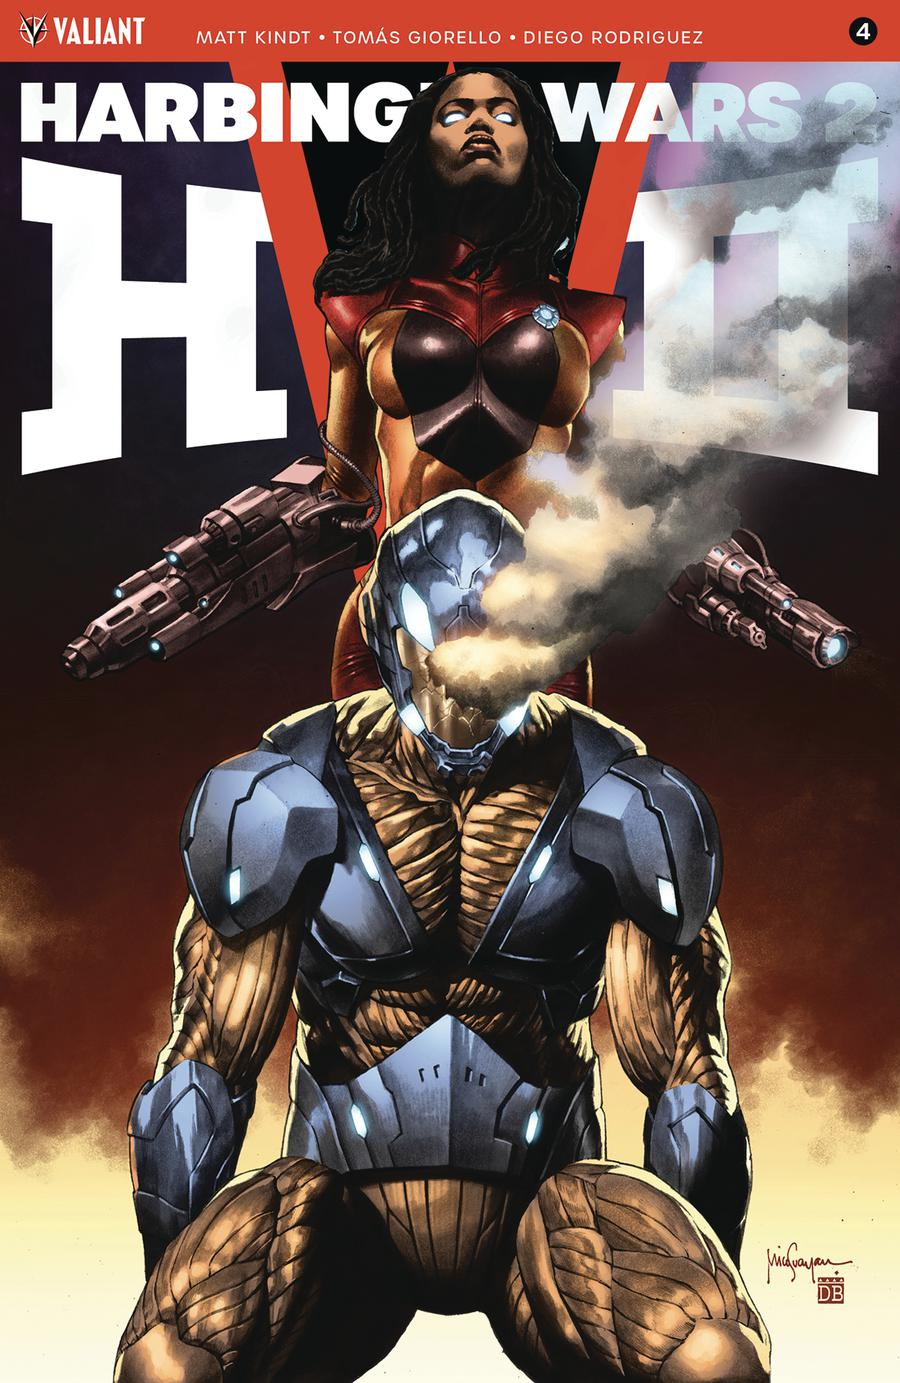 Harbinger Wars 2 #4 Cover B Variant Mico Suayan Cover